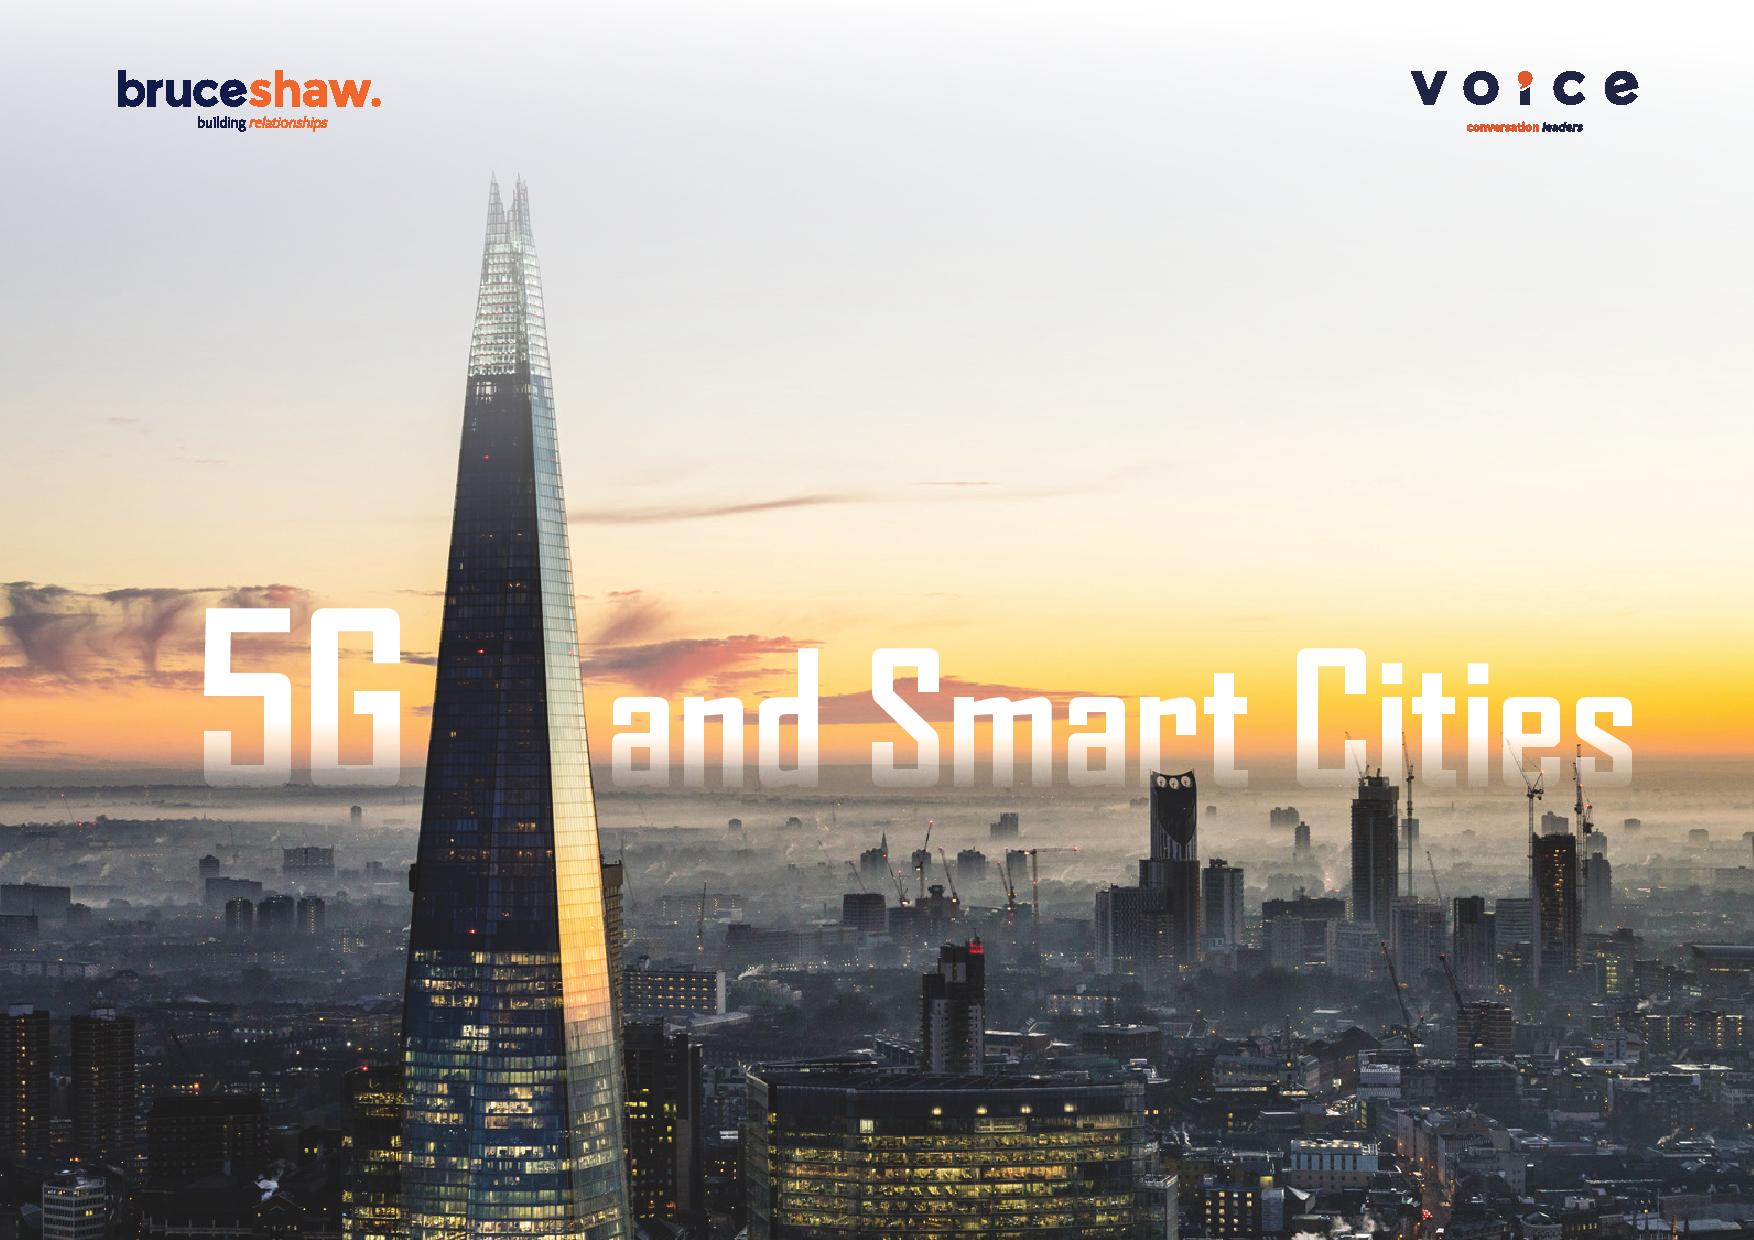 Bruceshaw talks 5G and Smart Cities